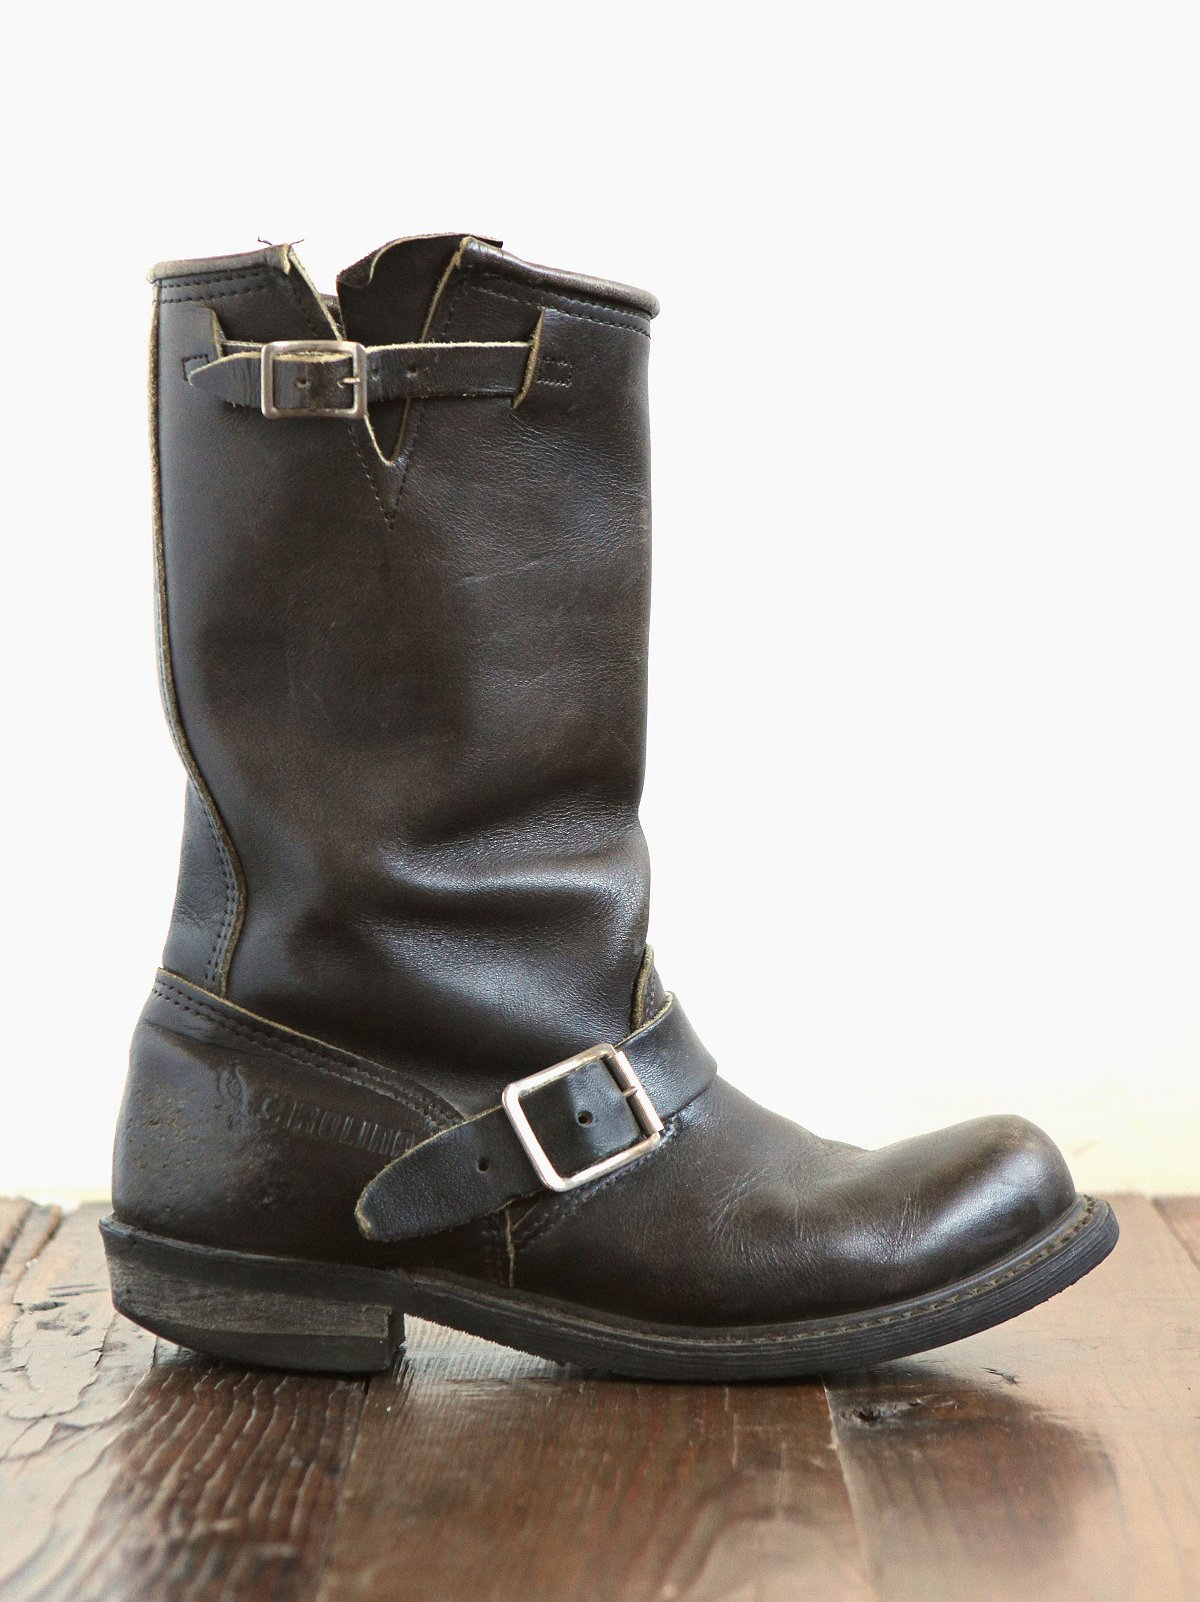 Vintage Leather Engineer Boots